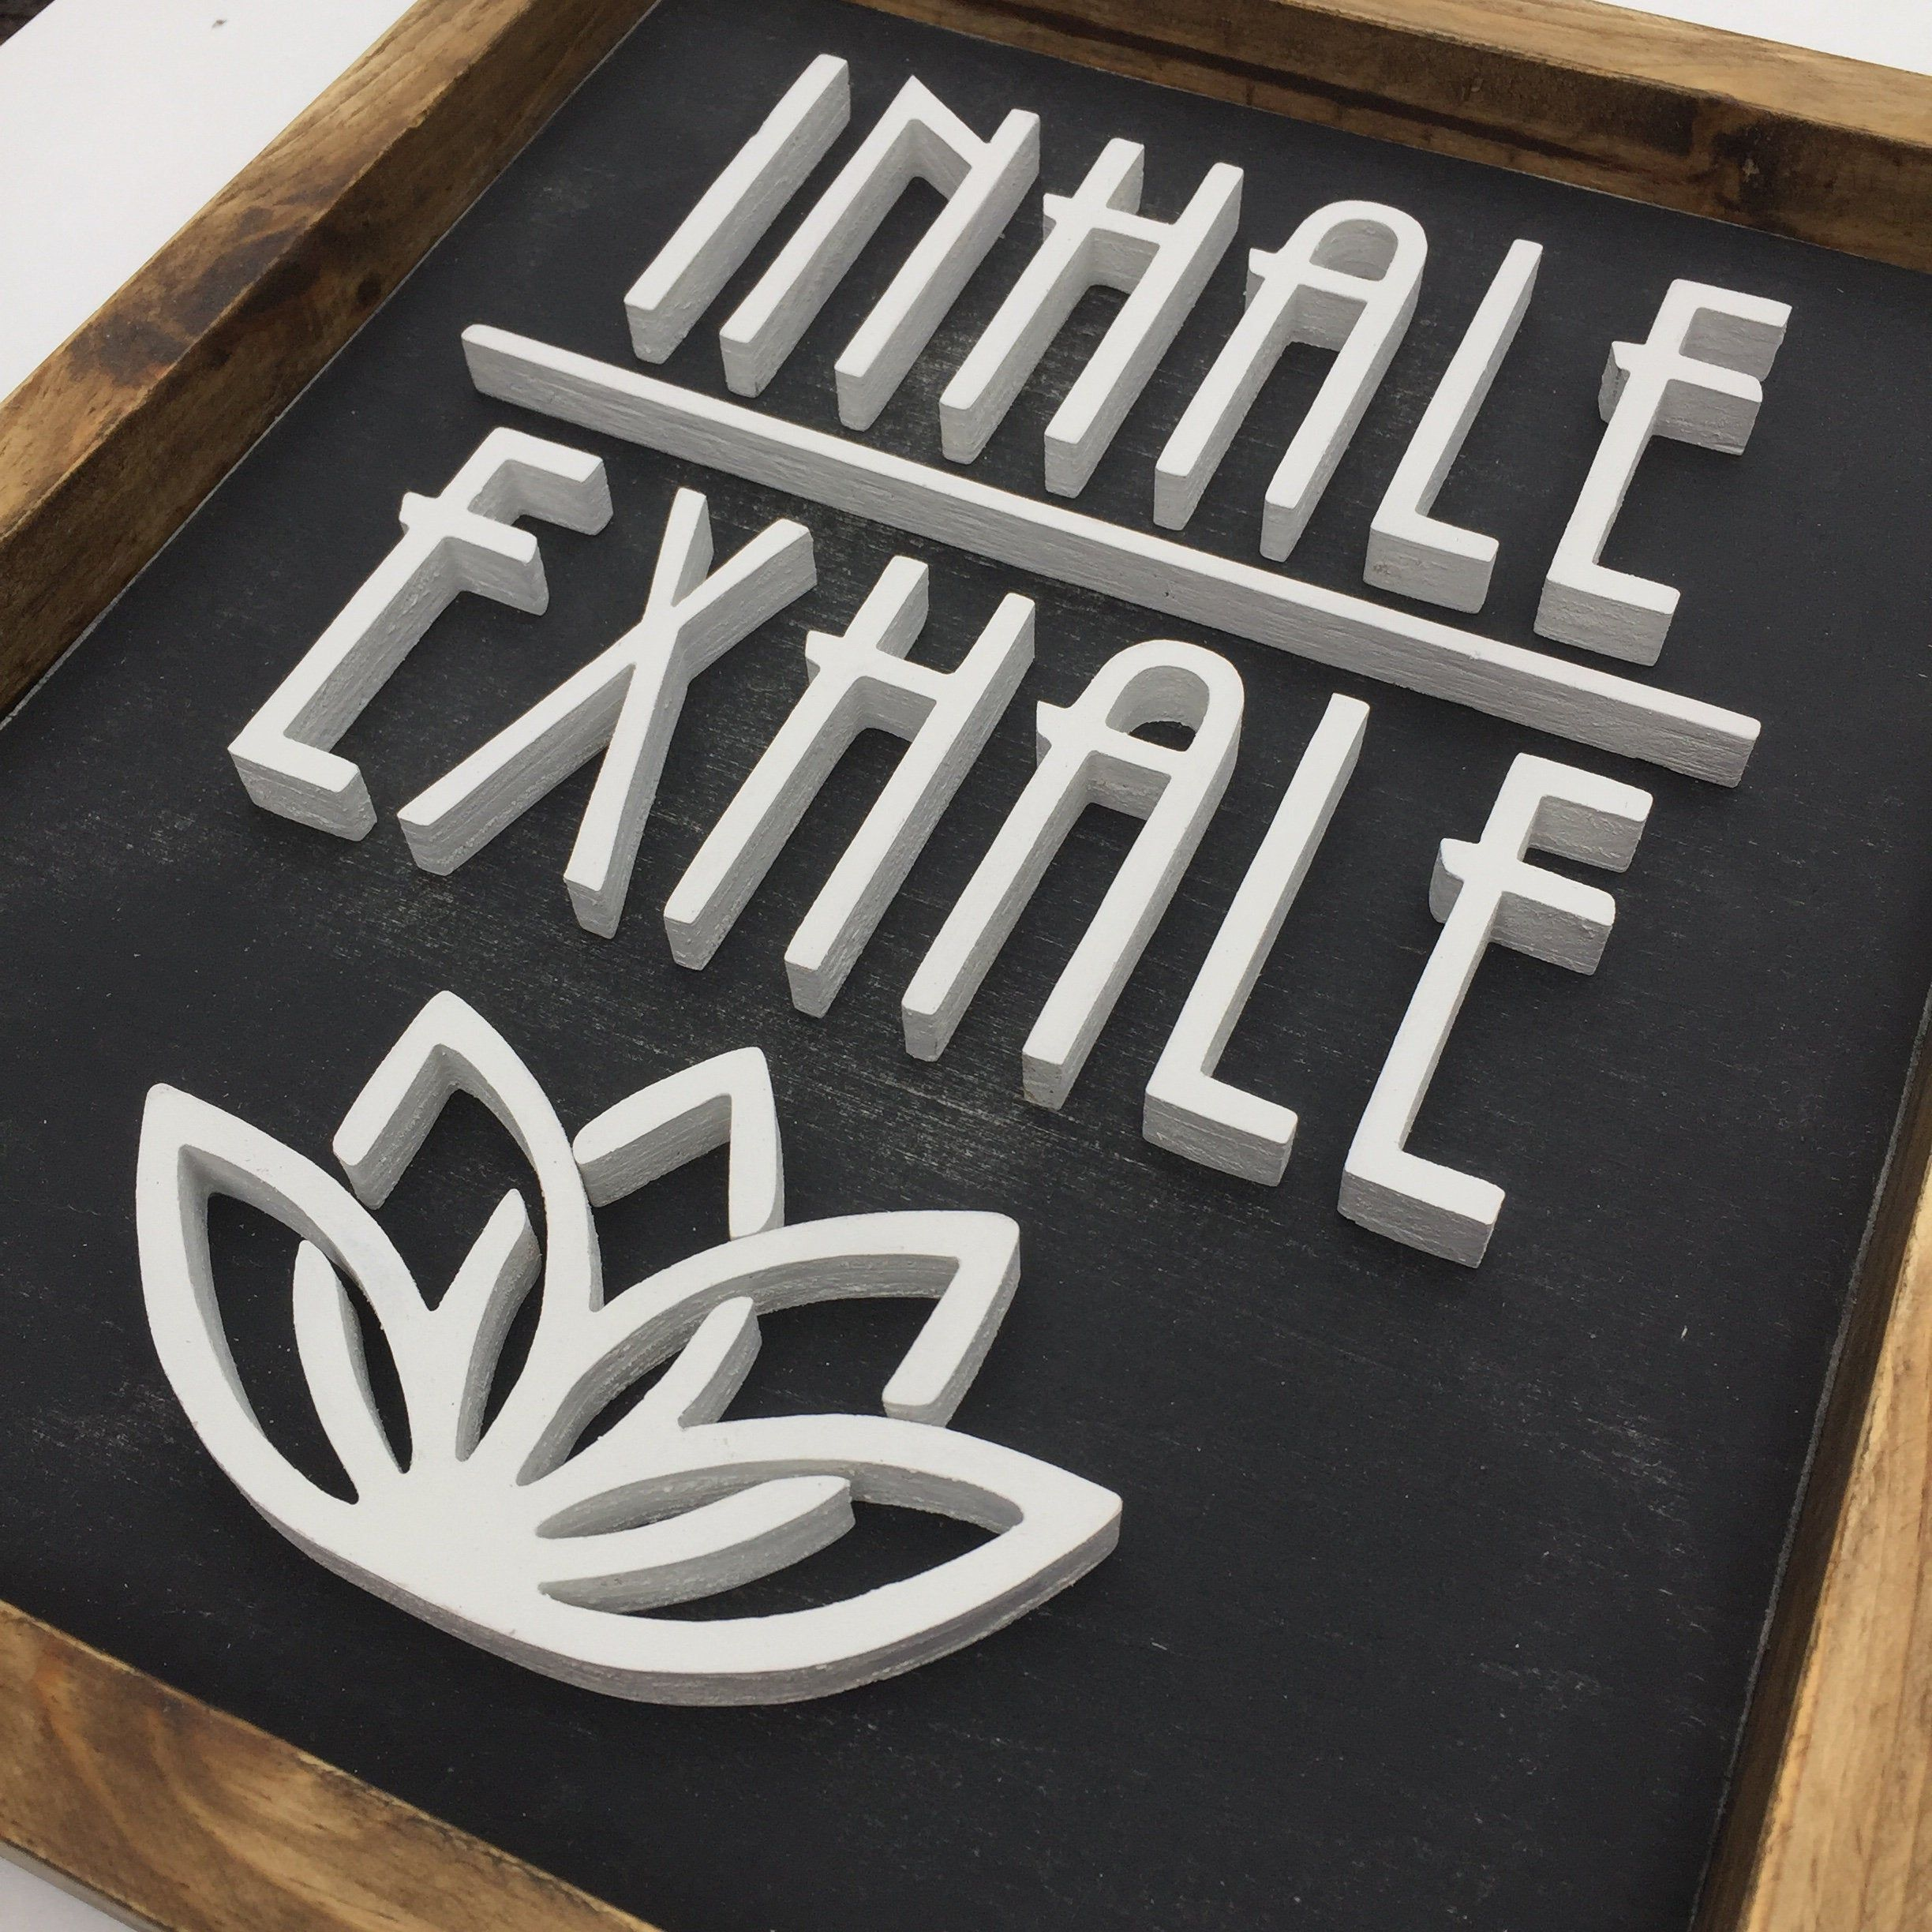 Inhale Exhale Wood Sign | Office Decor | Sayings Wall Art | Yoga Wall Sign